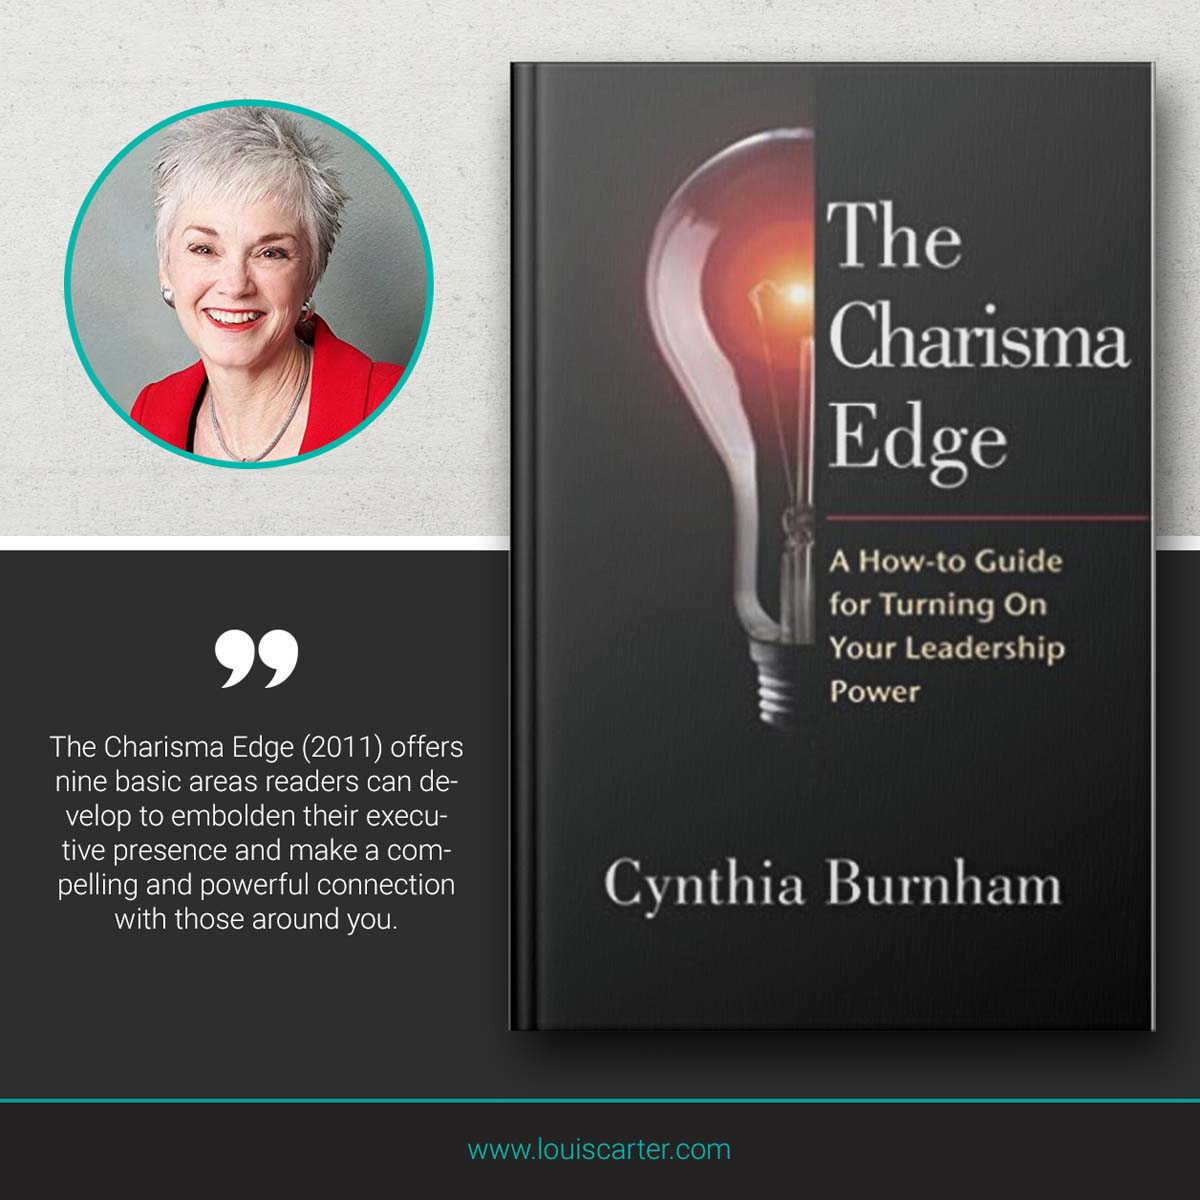 Picture of The Charisma Edge book on leadership by Cynthia Burham.